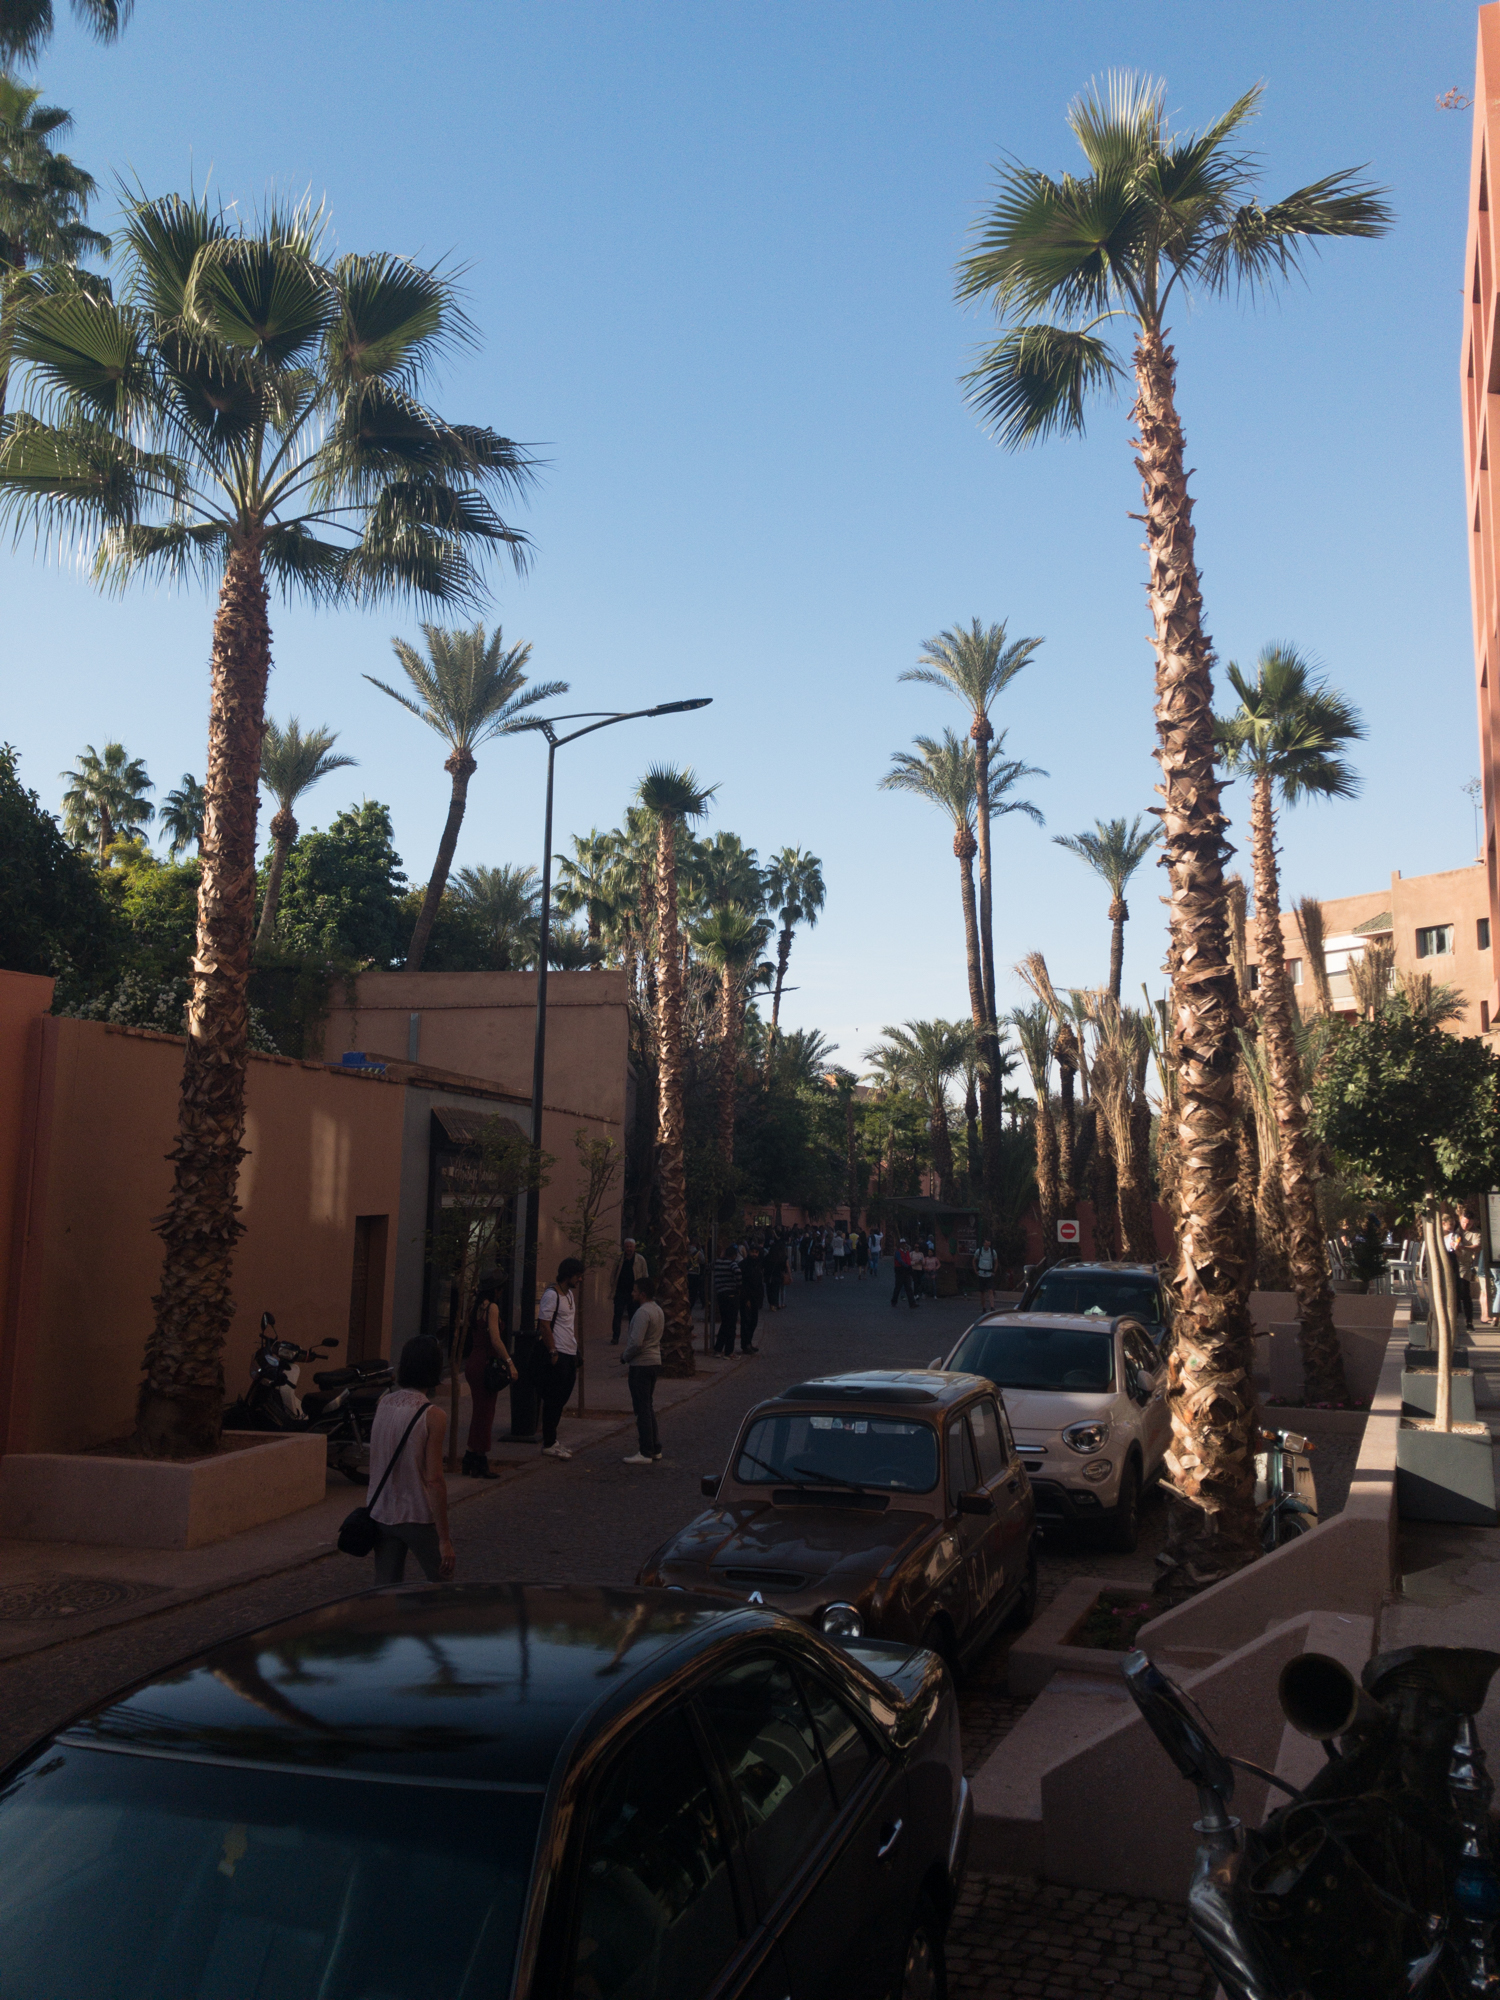 Marrakech_iPhone8+_Photos - Blog_Photos-33.jpg